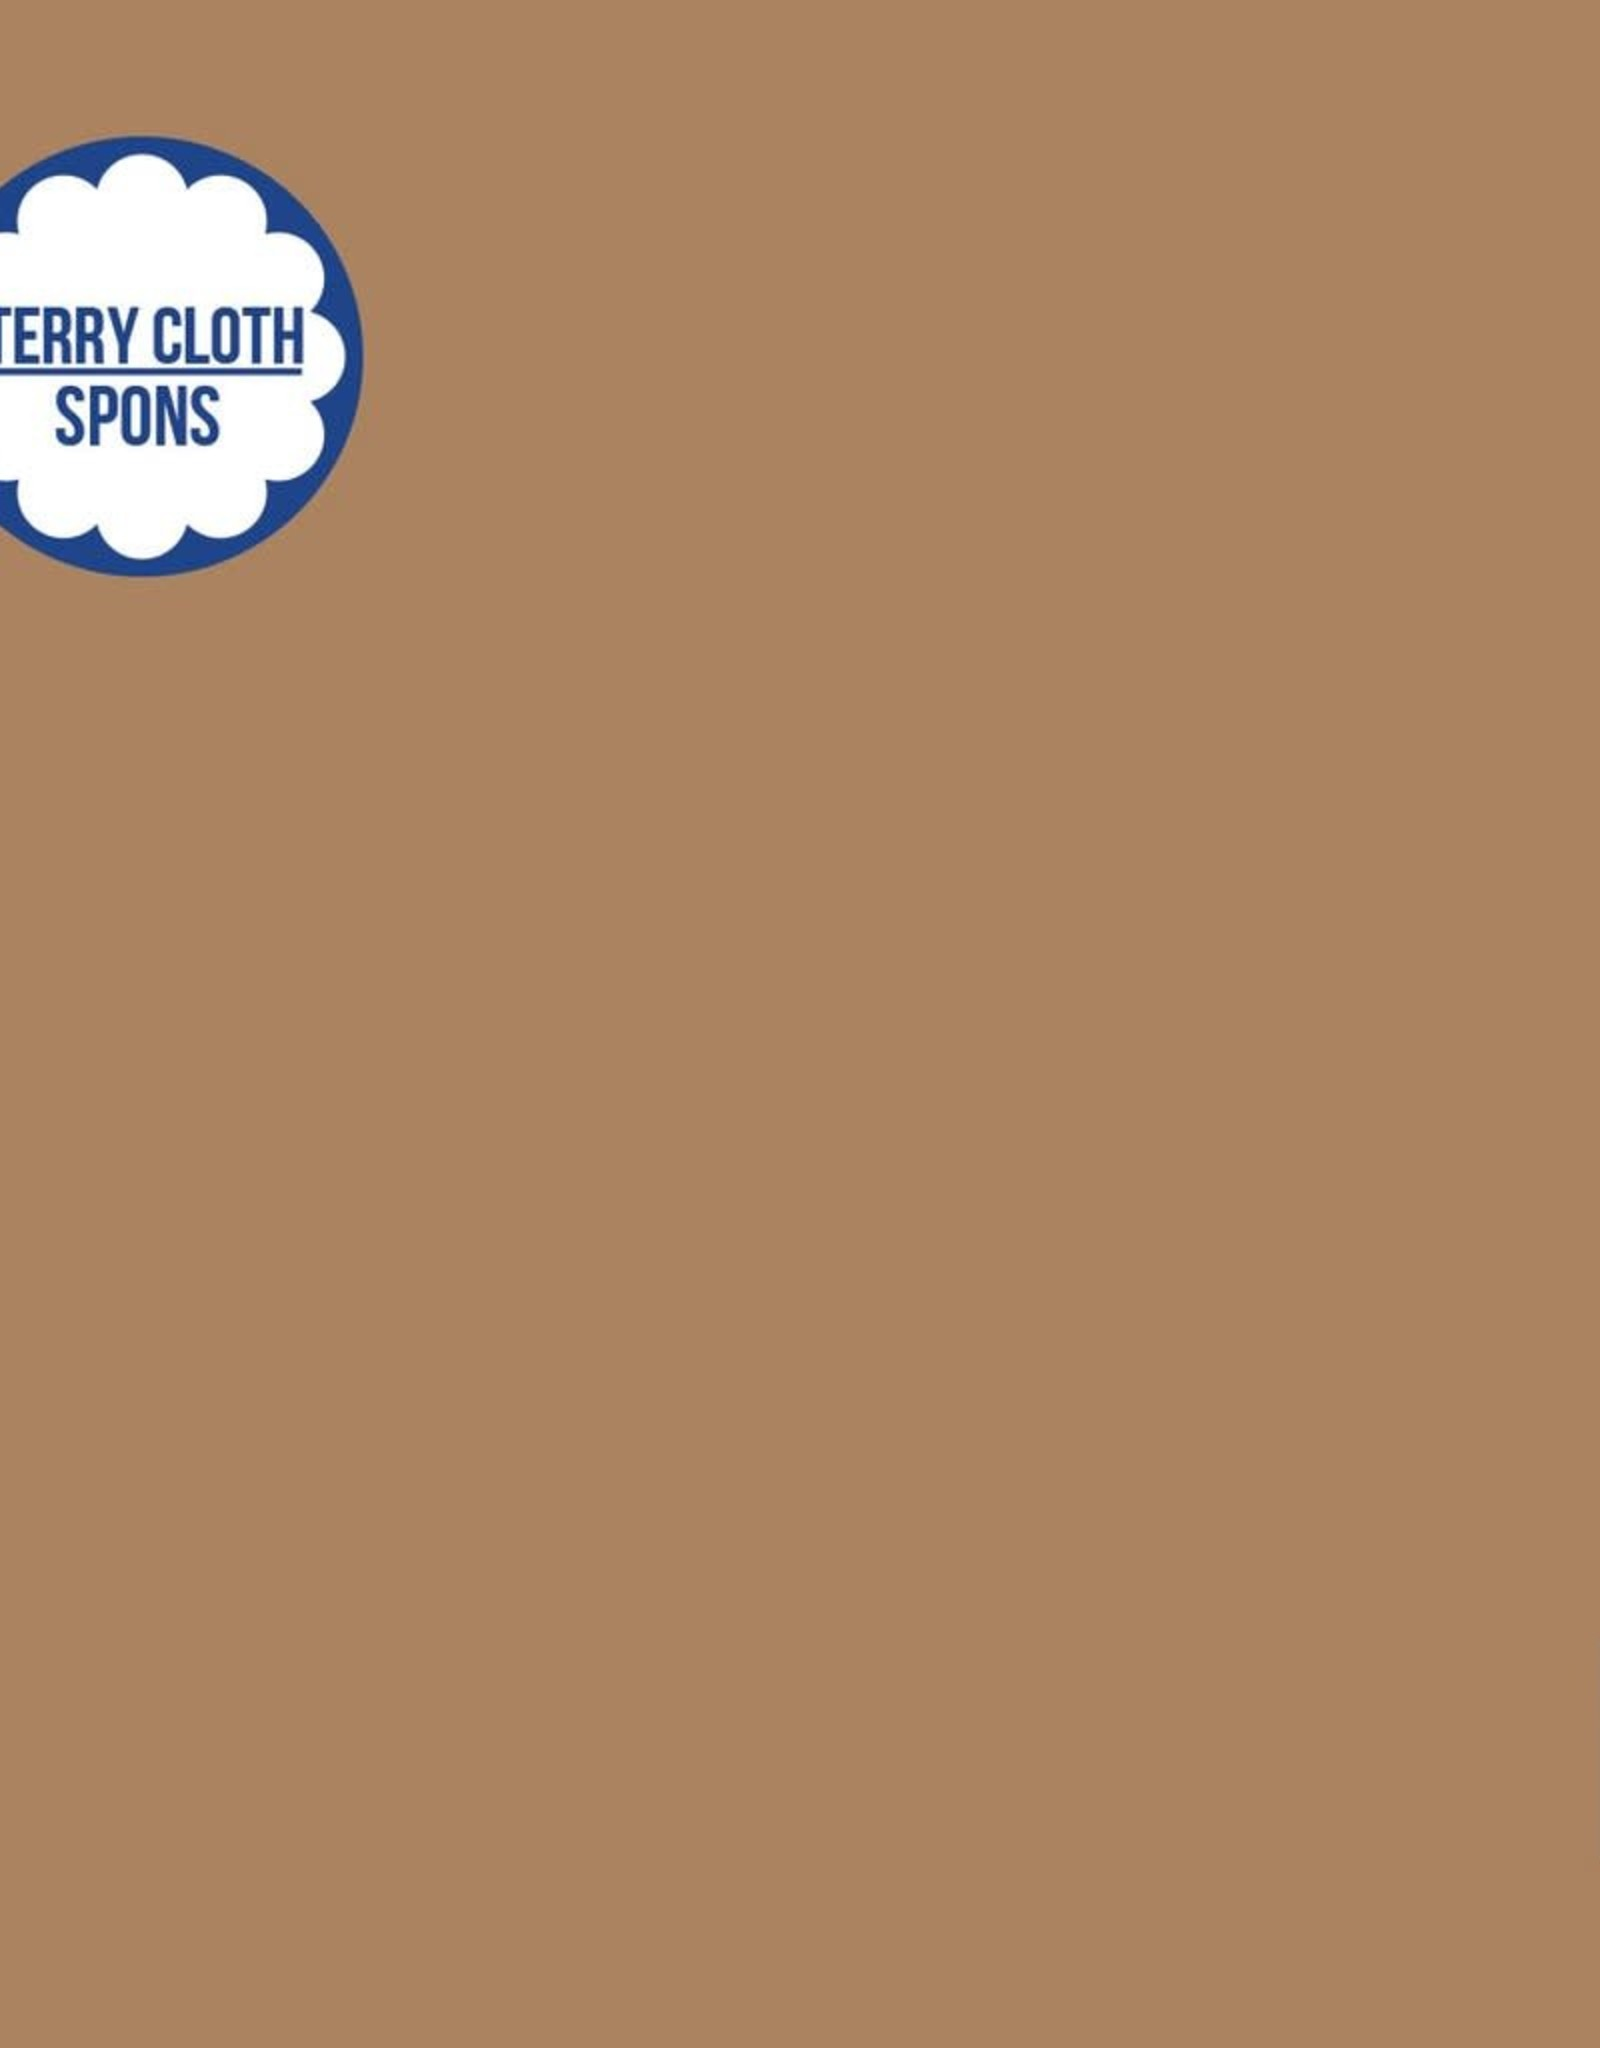 About Blue Fabrics Terry cloth uni 20 indian tan (spons)